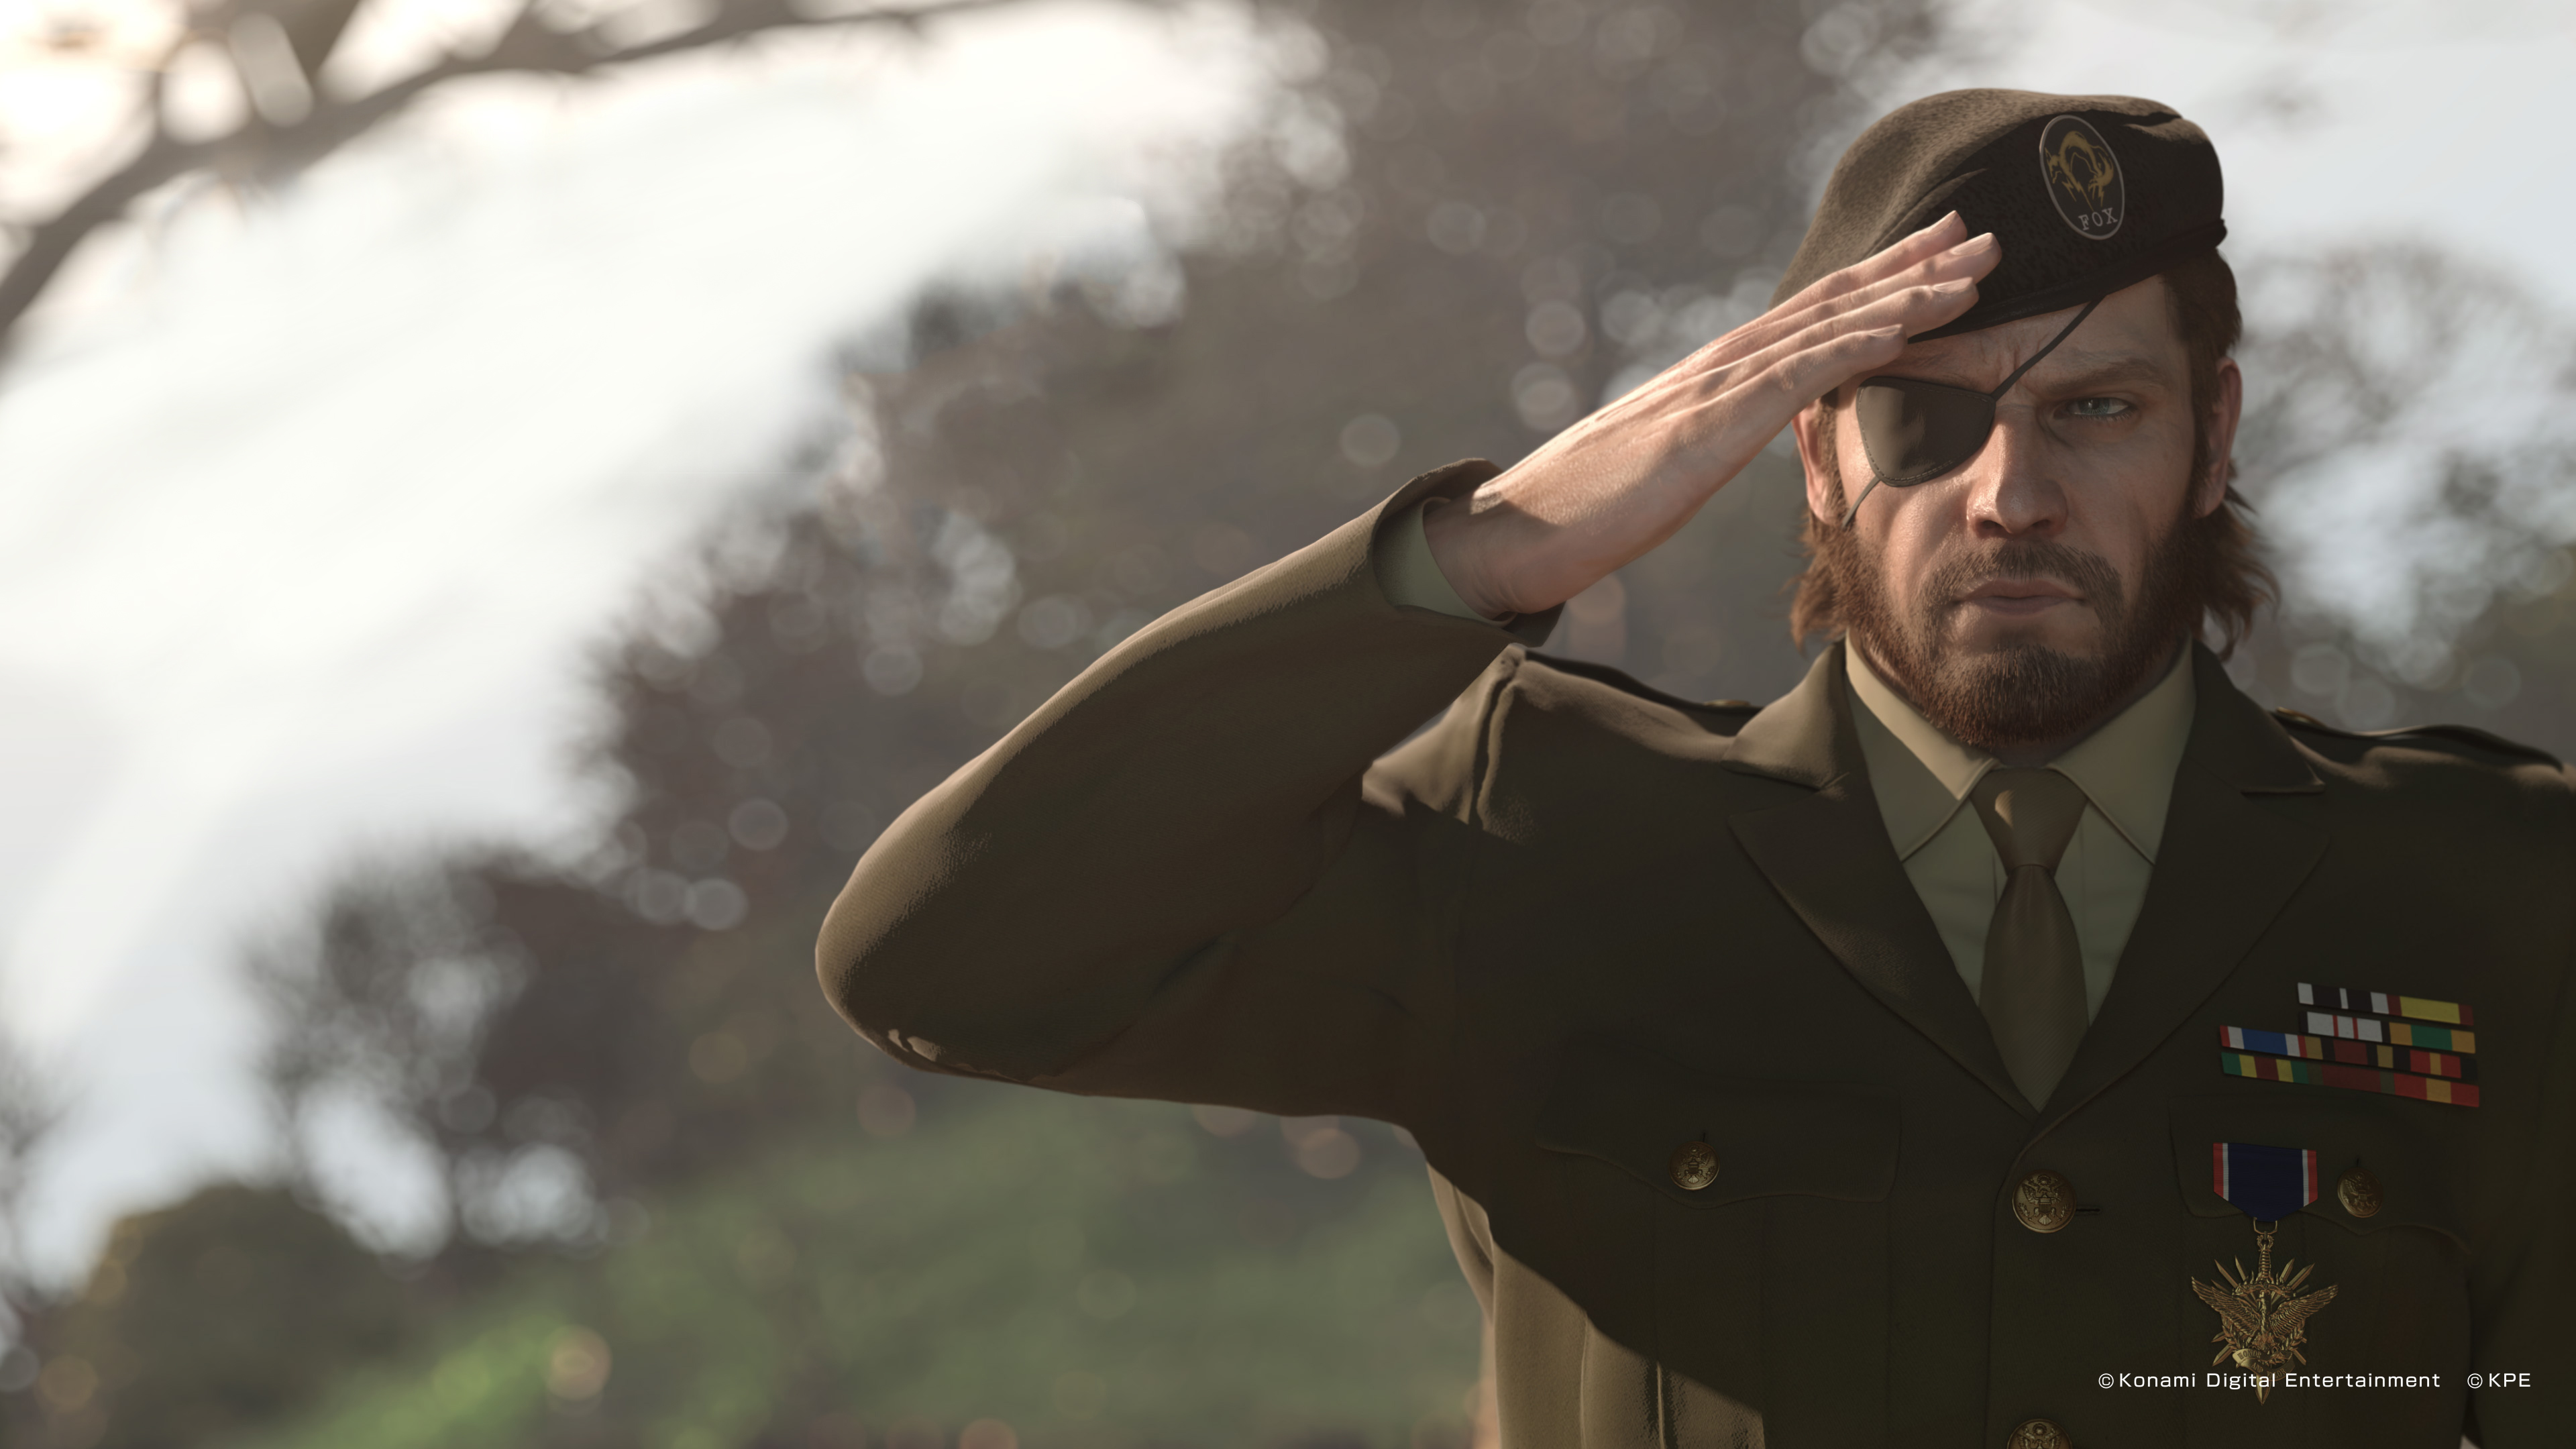 Big Boss In Military Dress 4k Ultra Fondo De Pantalla Hd